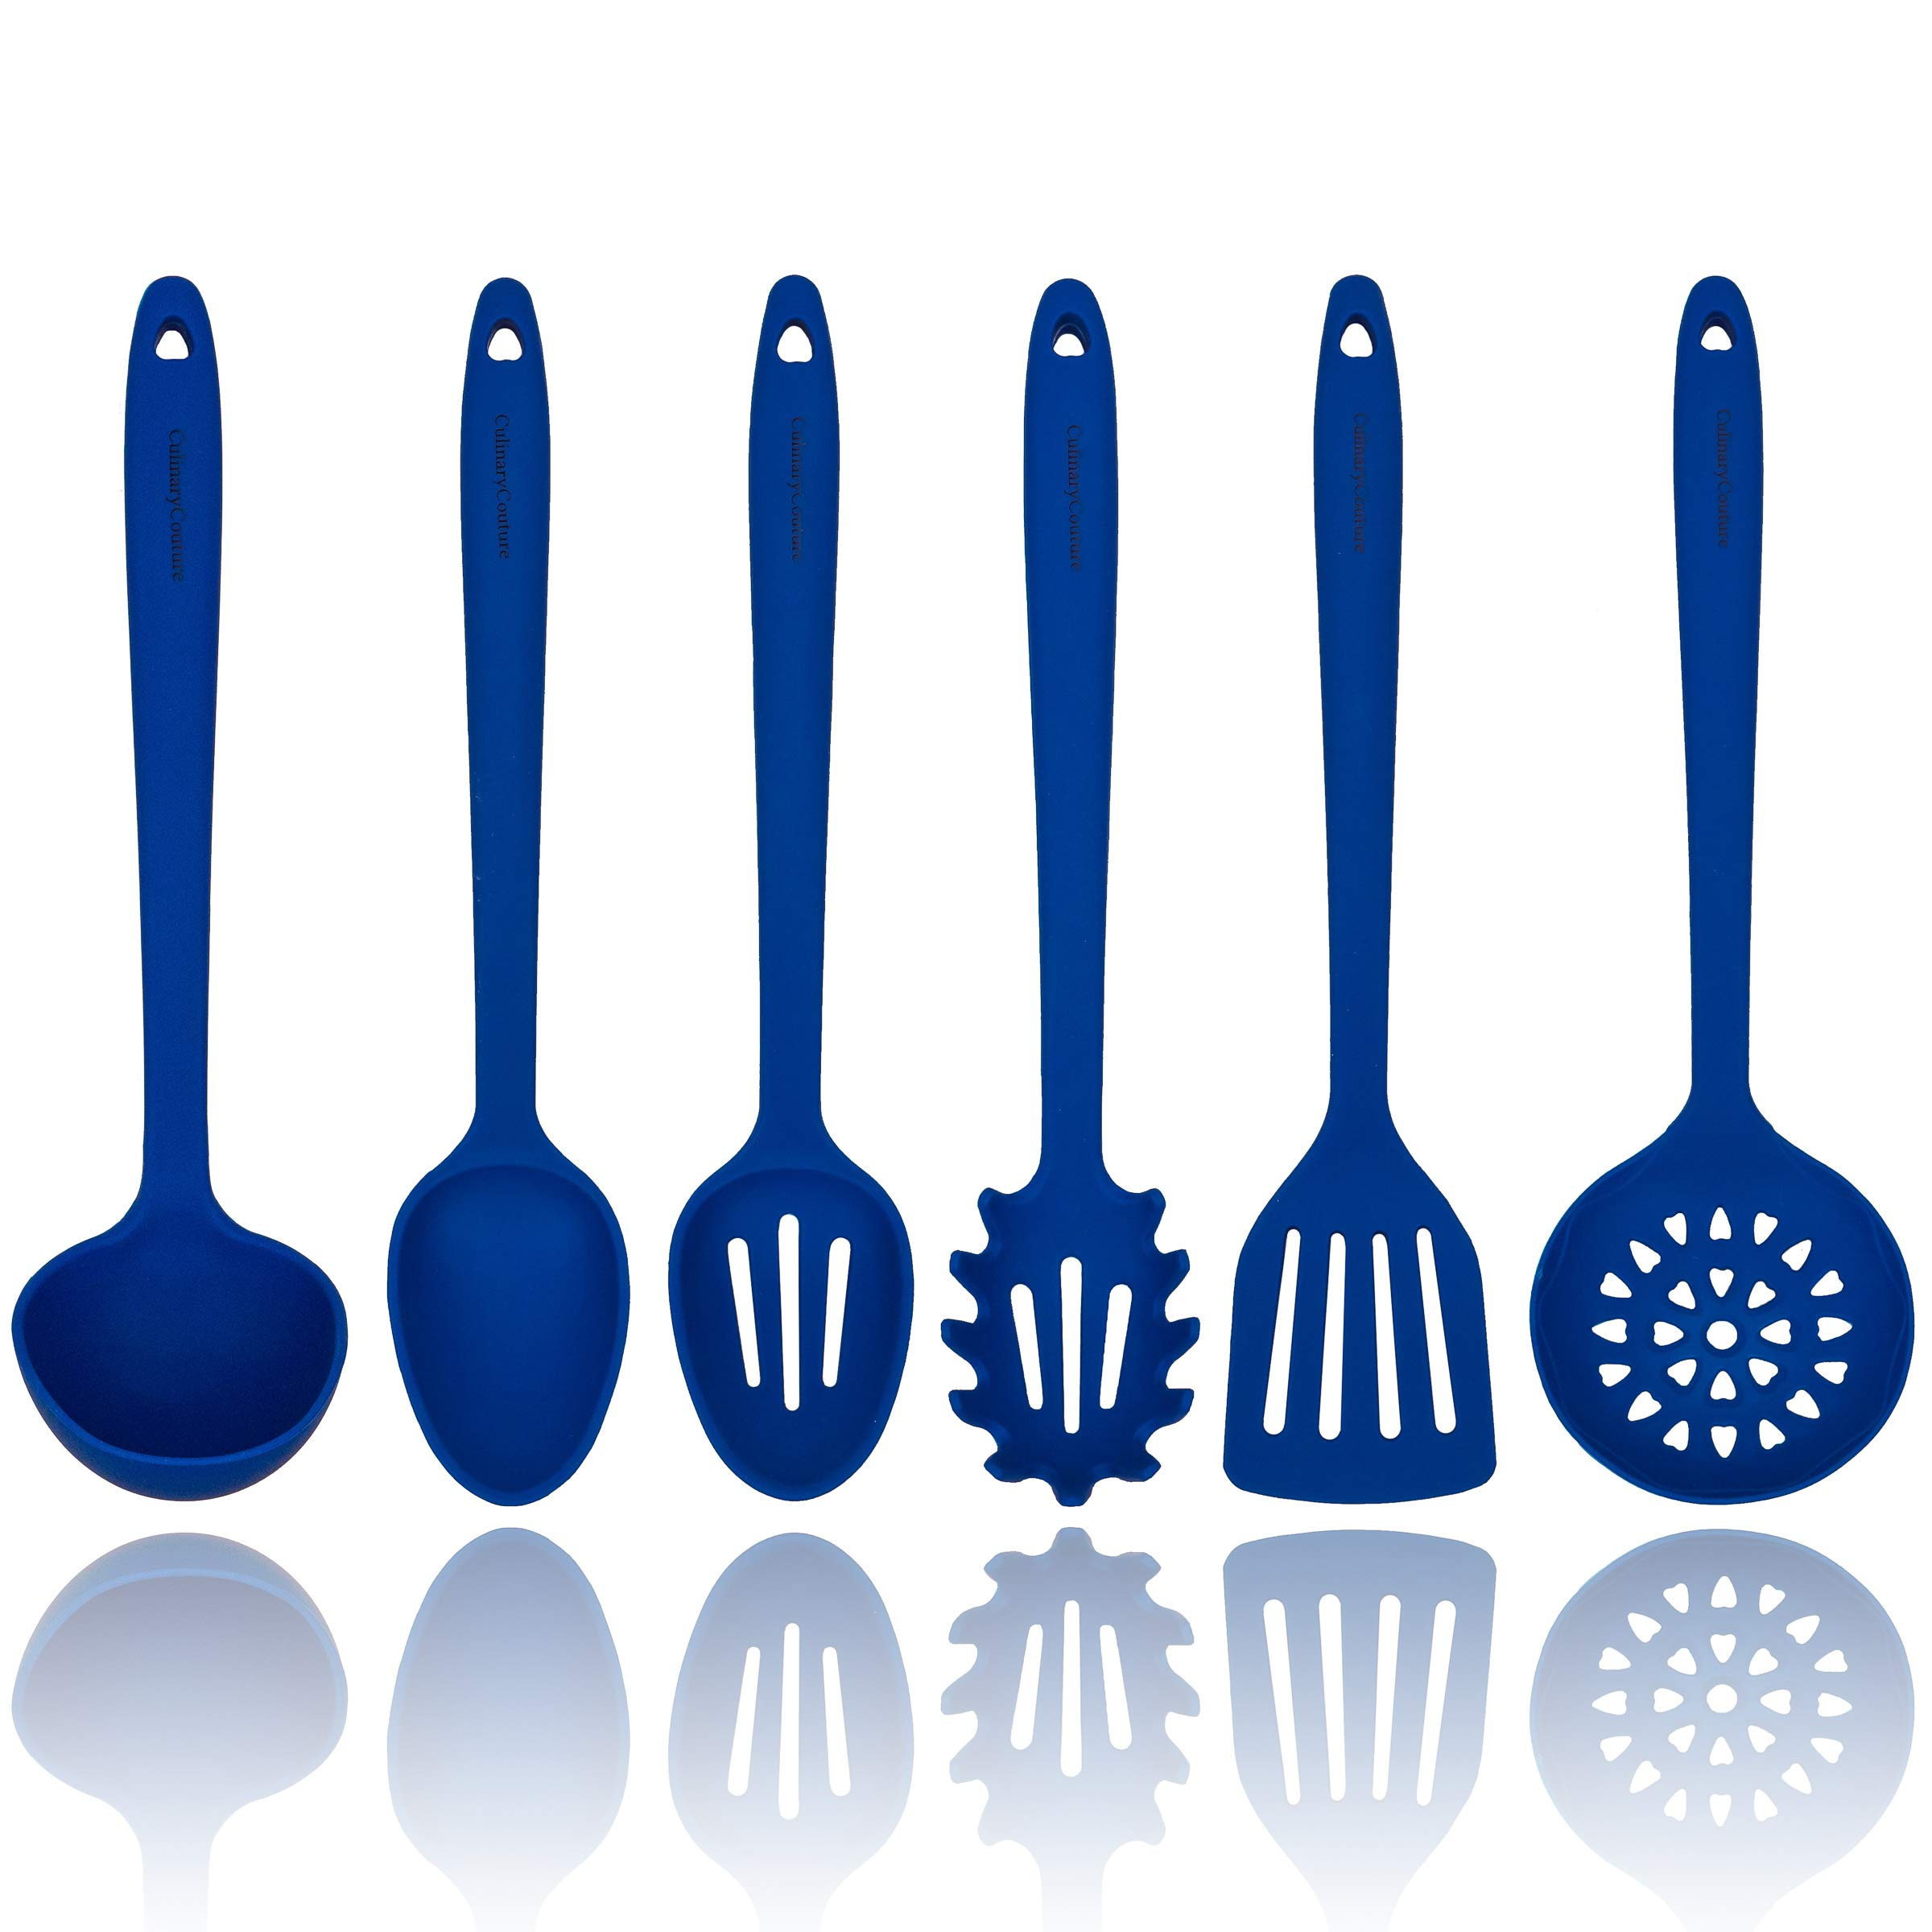 Blue Silicone Cooking Utensils Set - Sturdy Steel Inner Core - Spatula, Mixing & Slotted Spoon, Ladle, Pasta Server, Drainer - Heat Resistant Kitchen Tools - Bonus Recipe Ebook by Culinary Couture